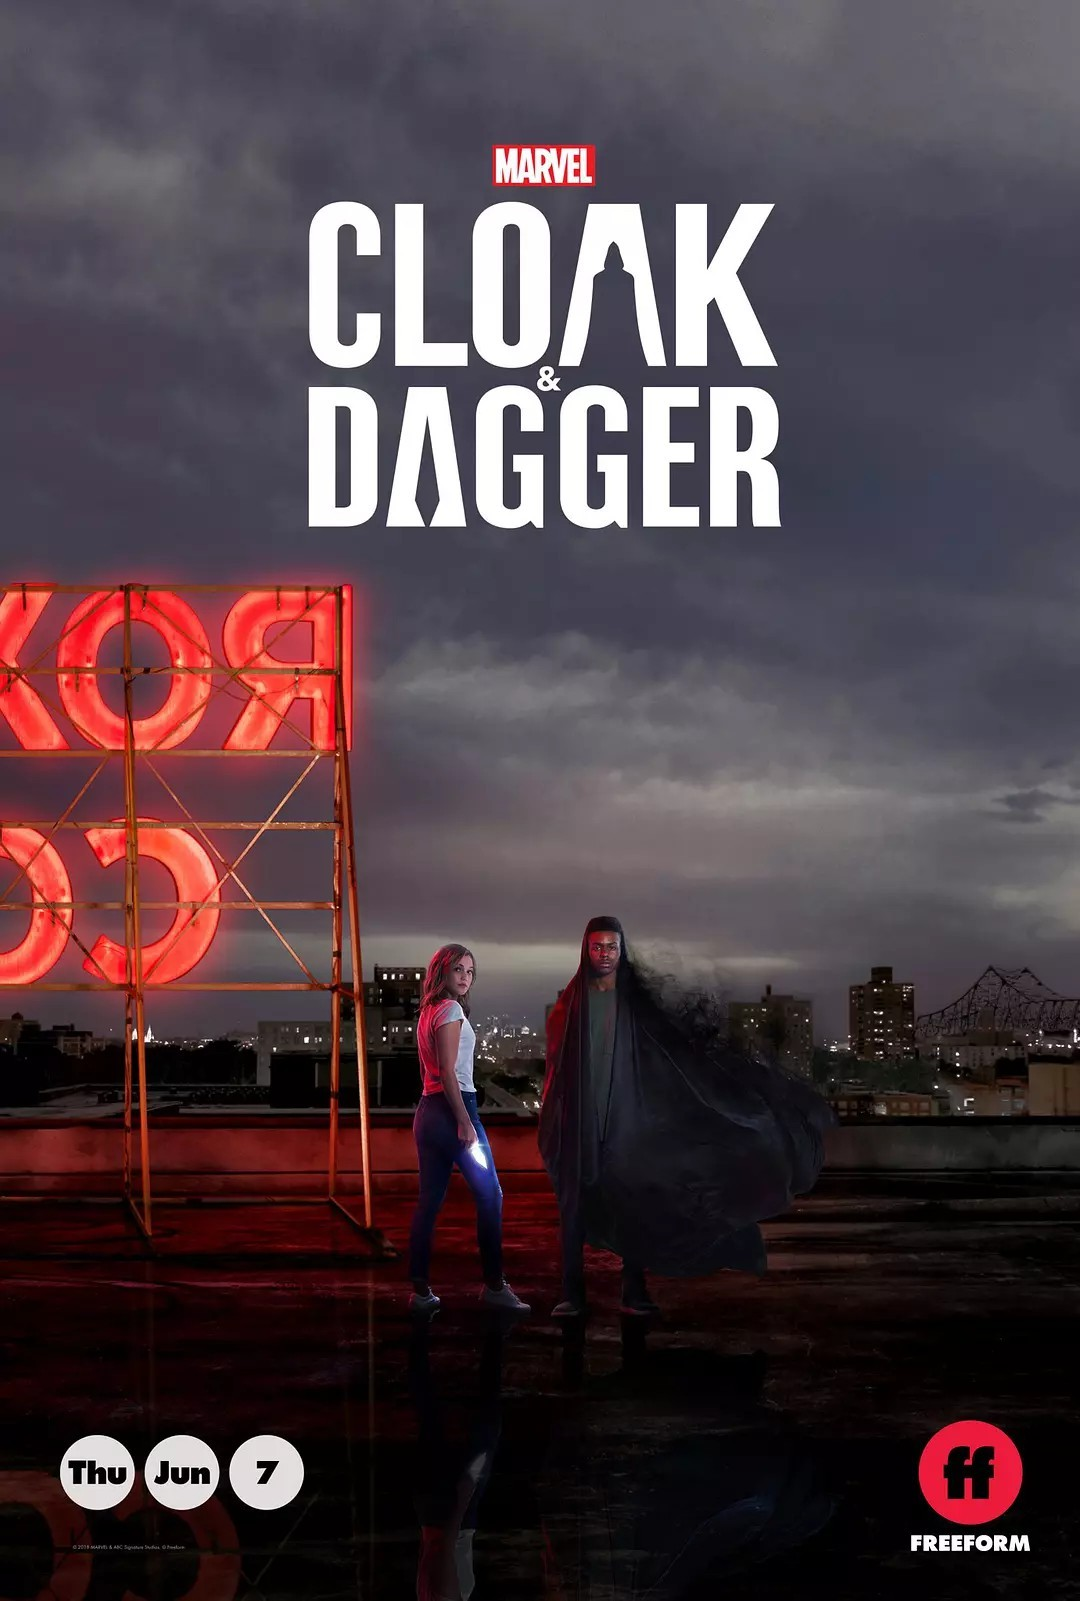 Marvel's Cloak & Dagger Season 1 斗篷与匕首 第一季